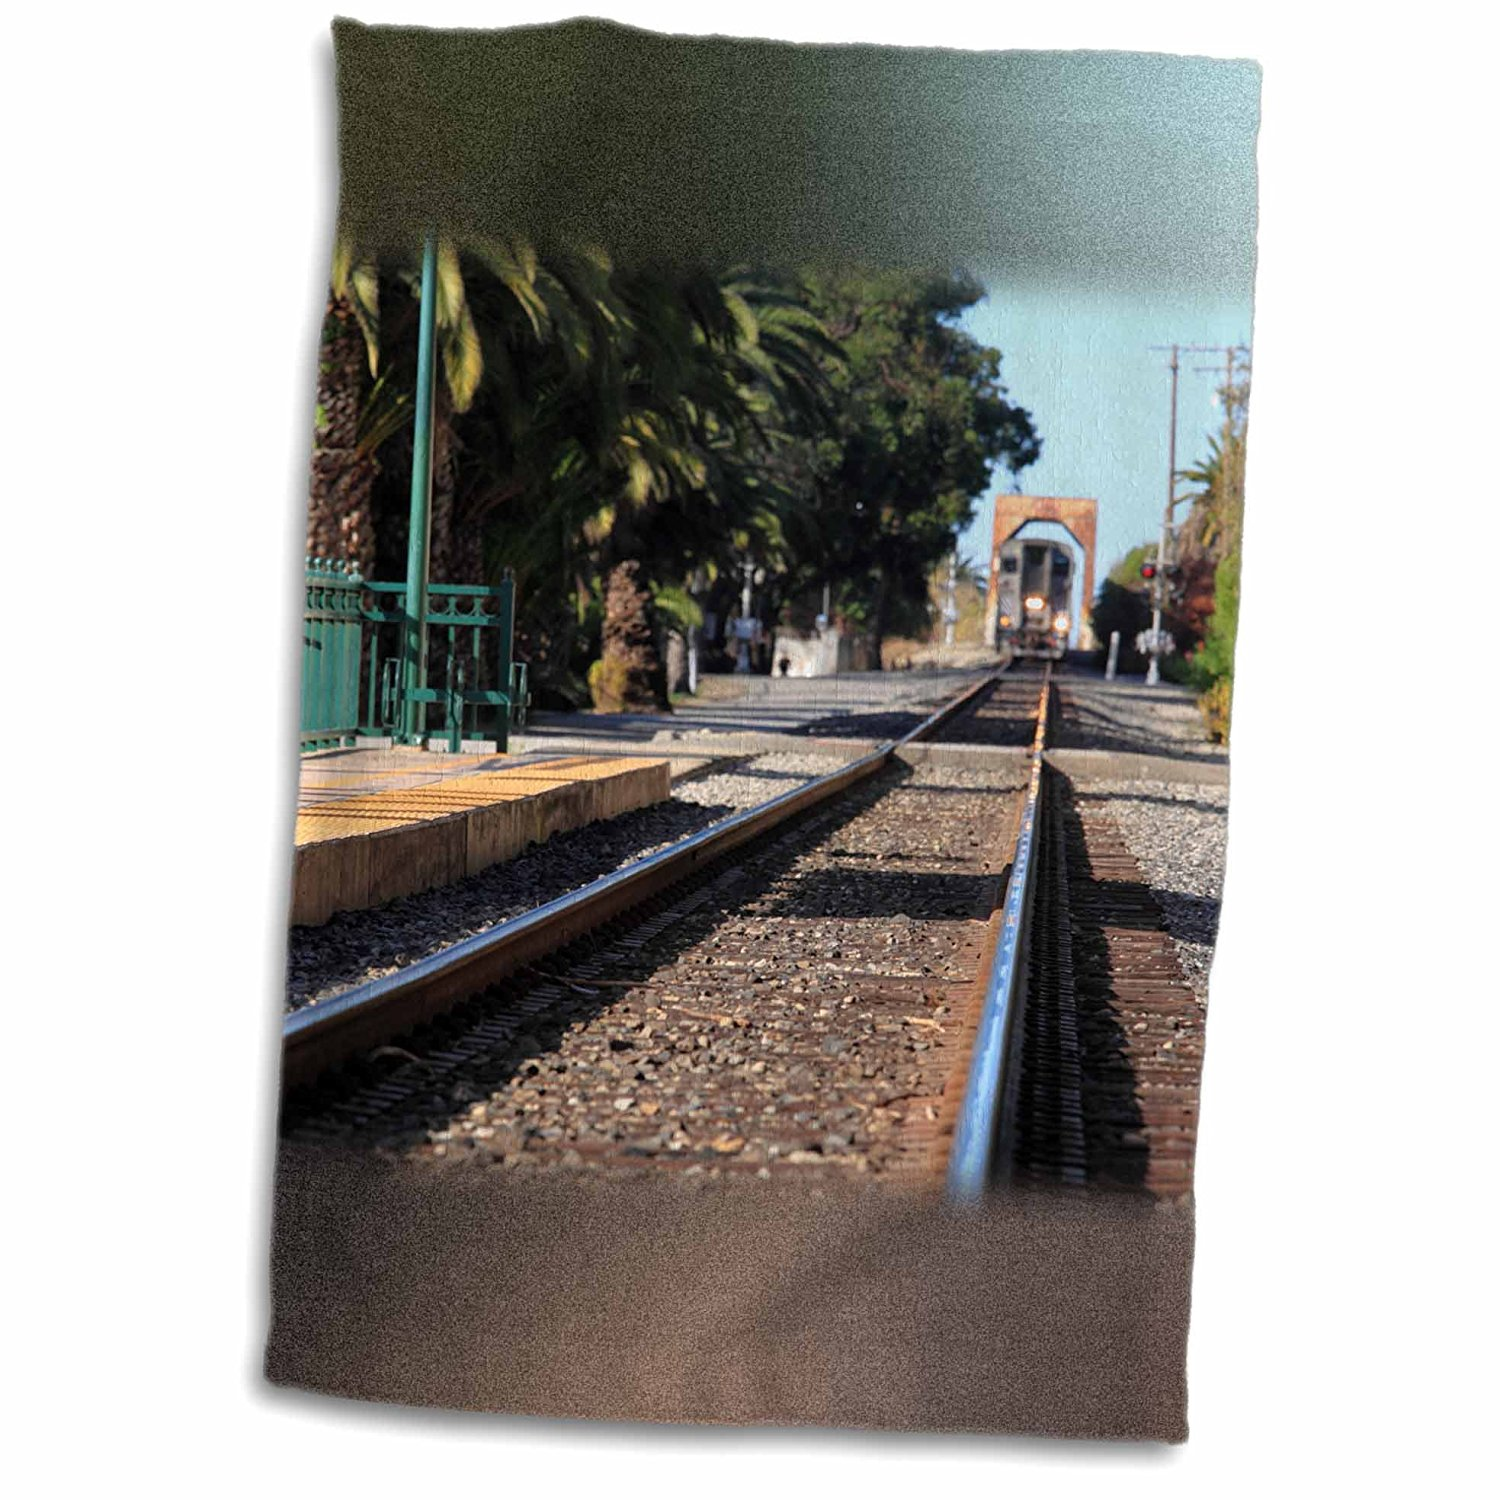 Henrik Lehnerer Designs - Transportation - Ventura Train Station California with a view of the tracks and train. - 11x17 Towel (twl_240389_1)